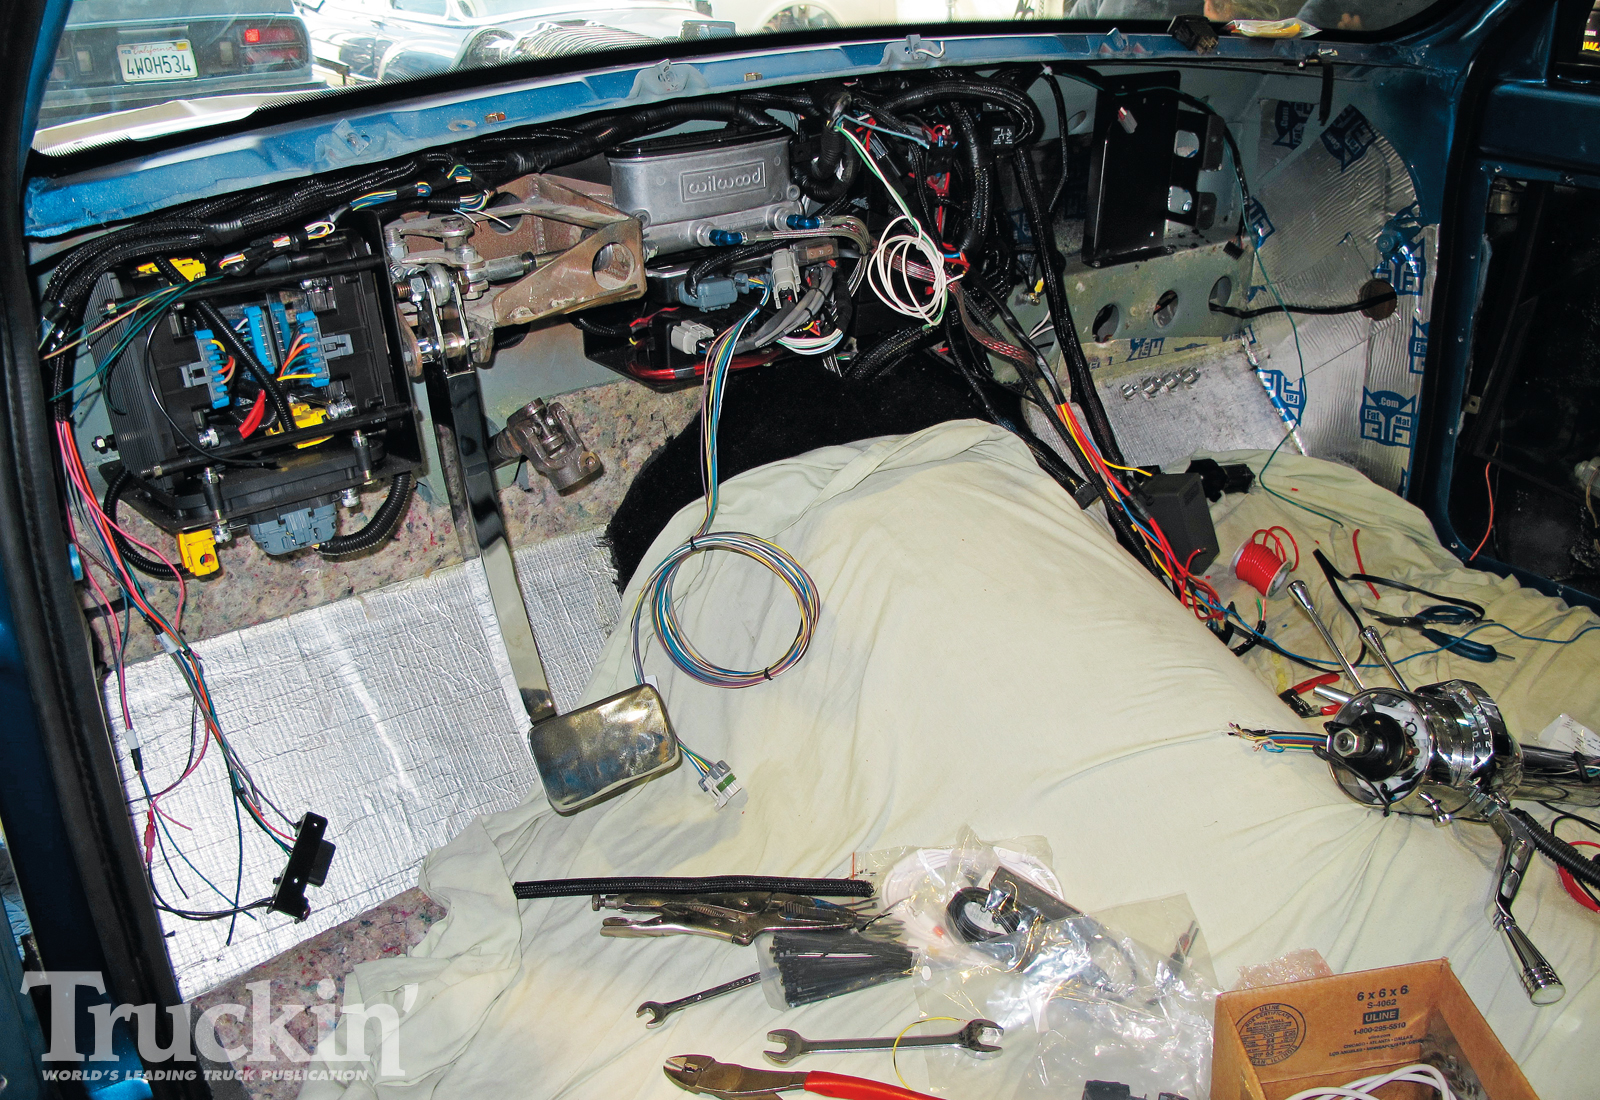 Pleasant 1967 Chevy C10 Buildup Project The Show Photo Image Gallery Wiring 101 Nizathateforg